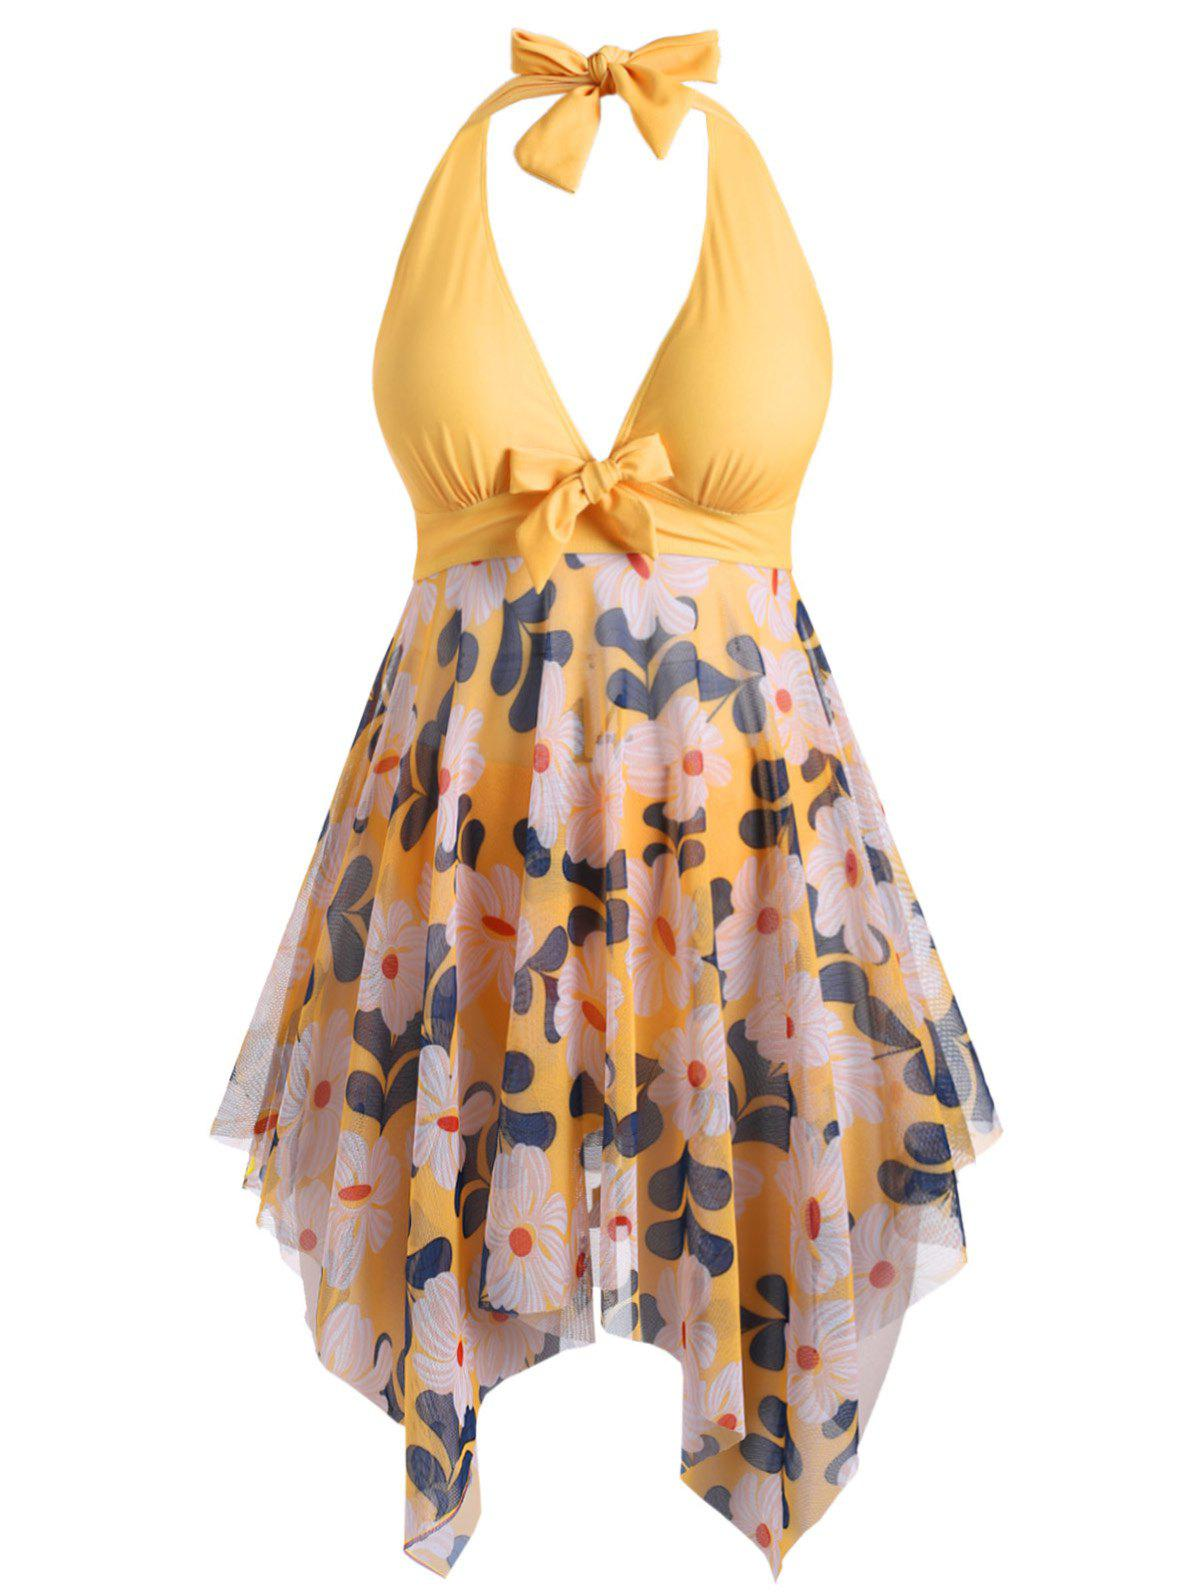 Plus Size Halter Low Cut Floral Print Handkerchief Tankini Swimsuit - YELLOW 1X